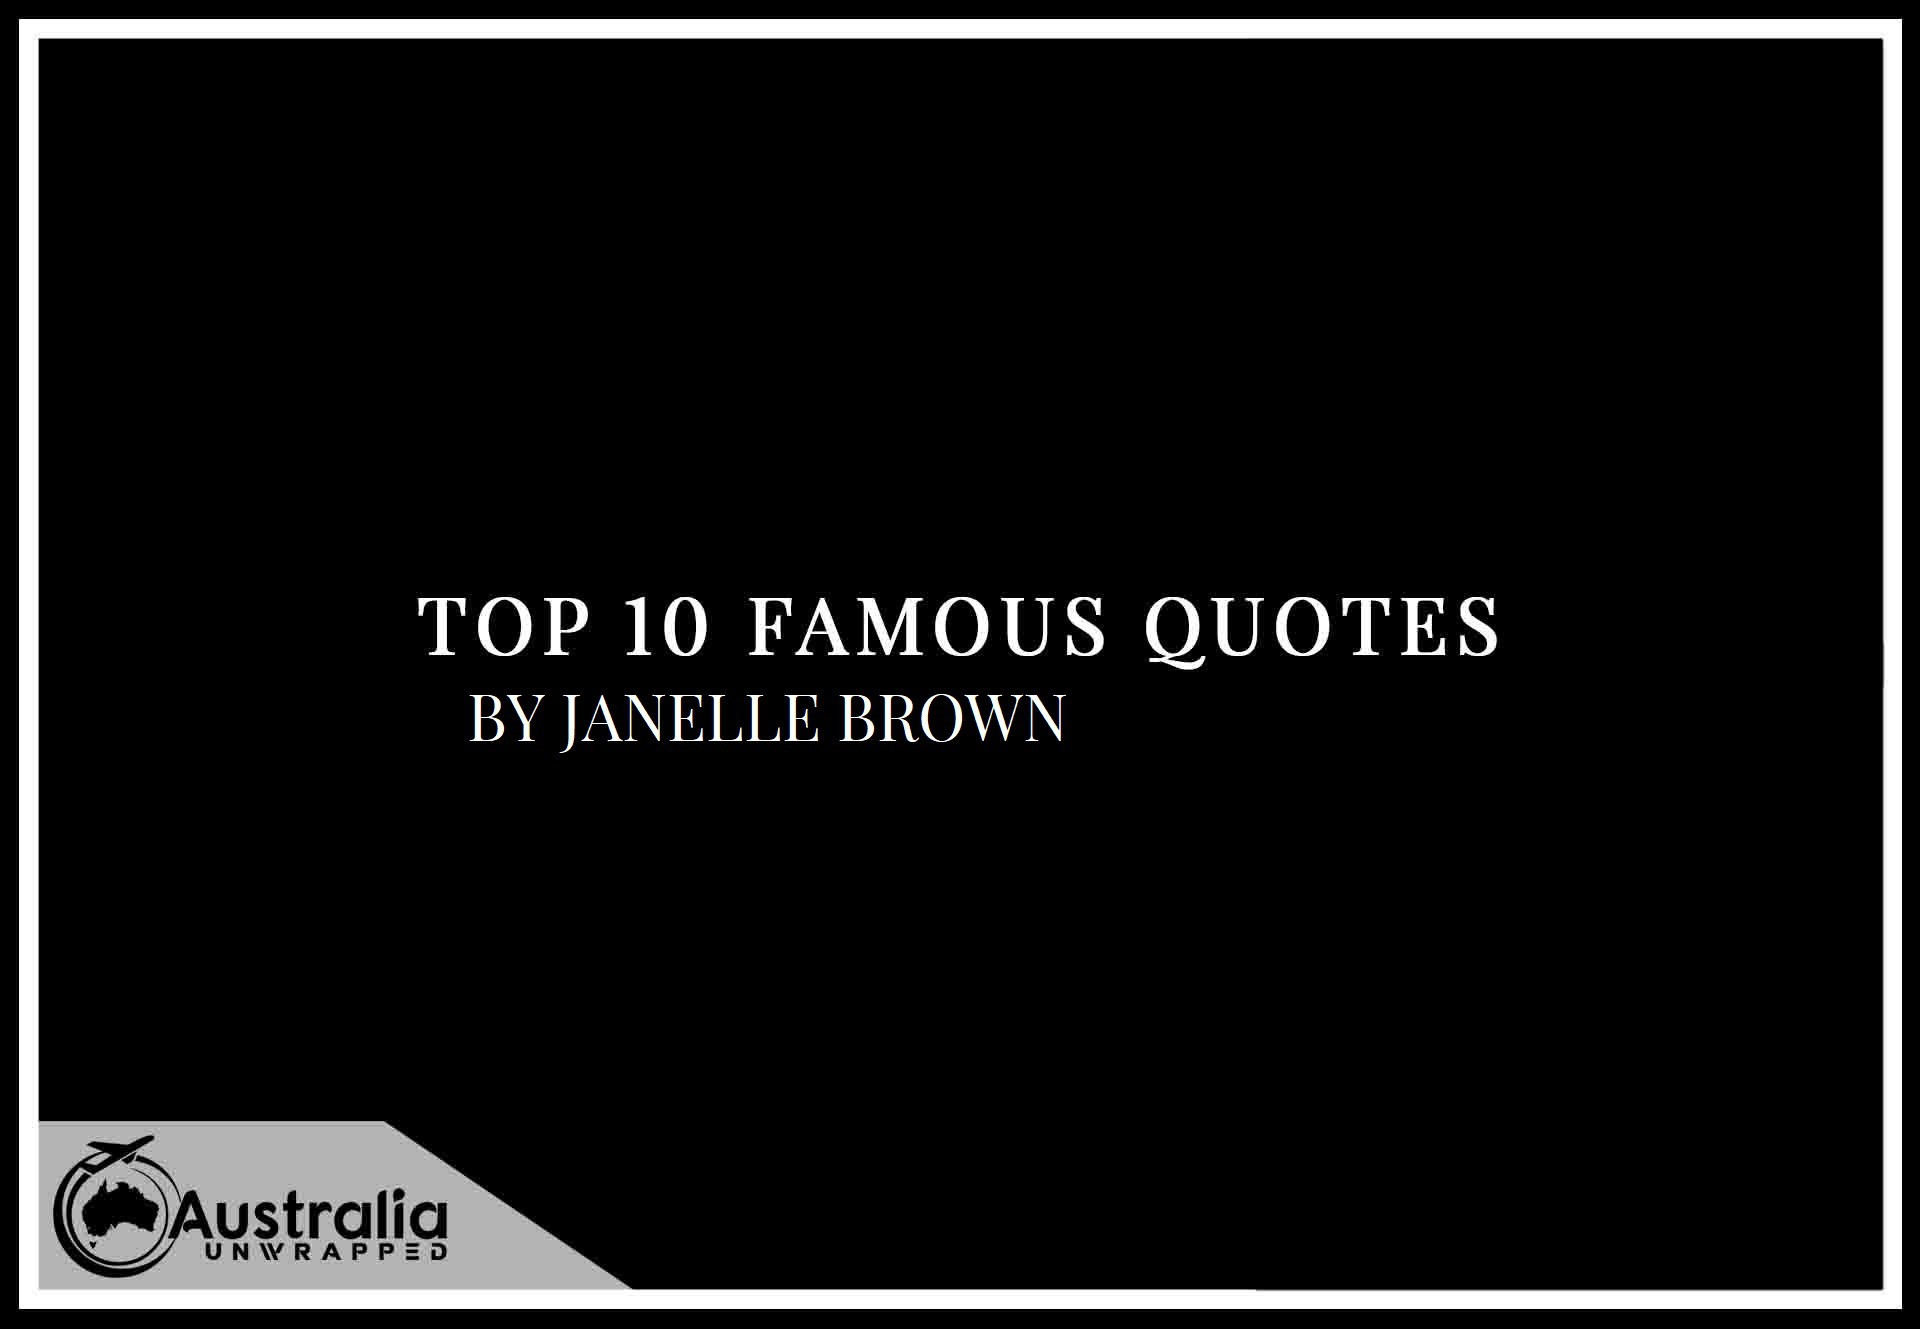 Top 10 Famous Quotes by Author Janelle Brown